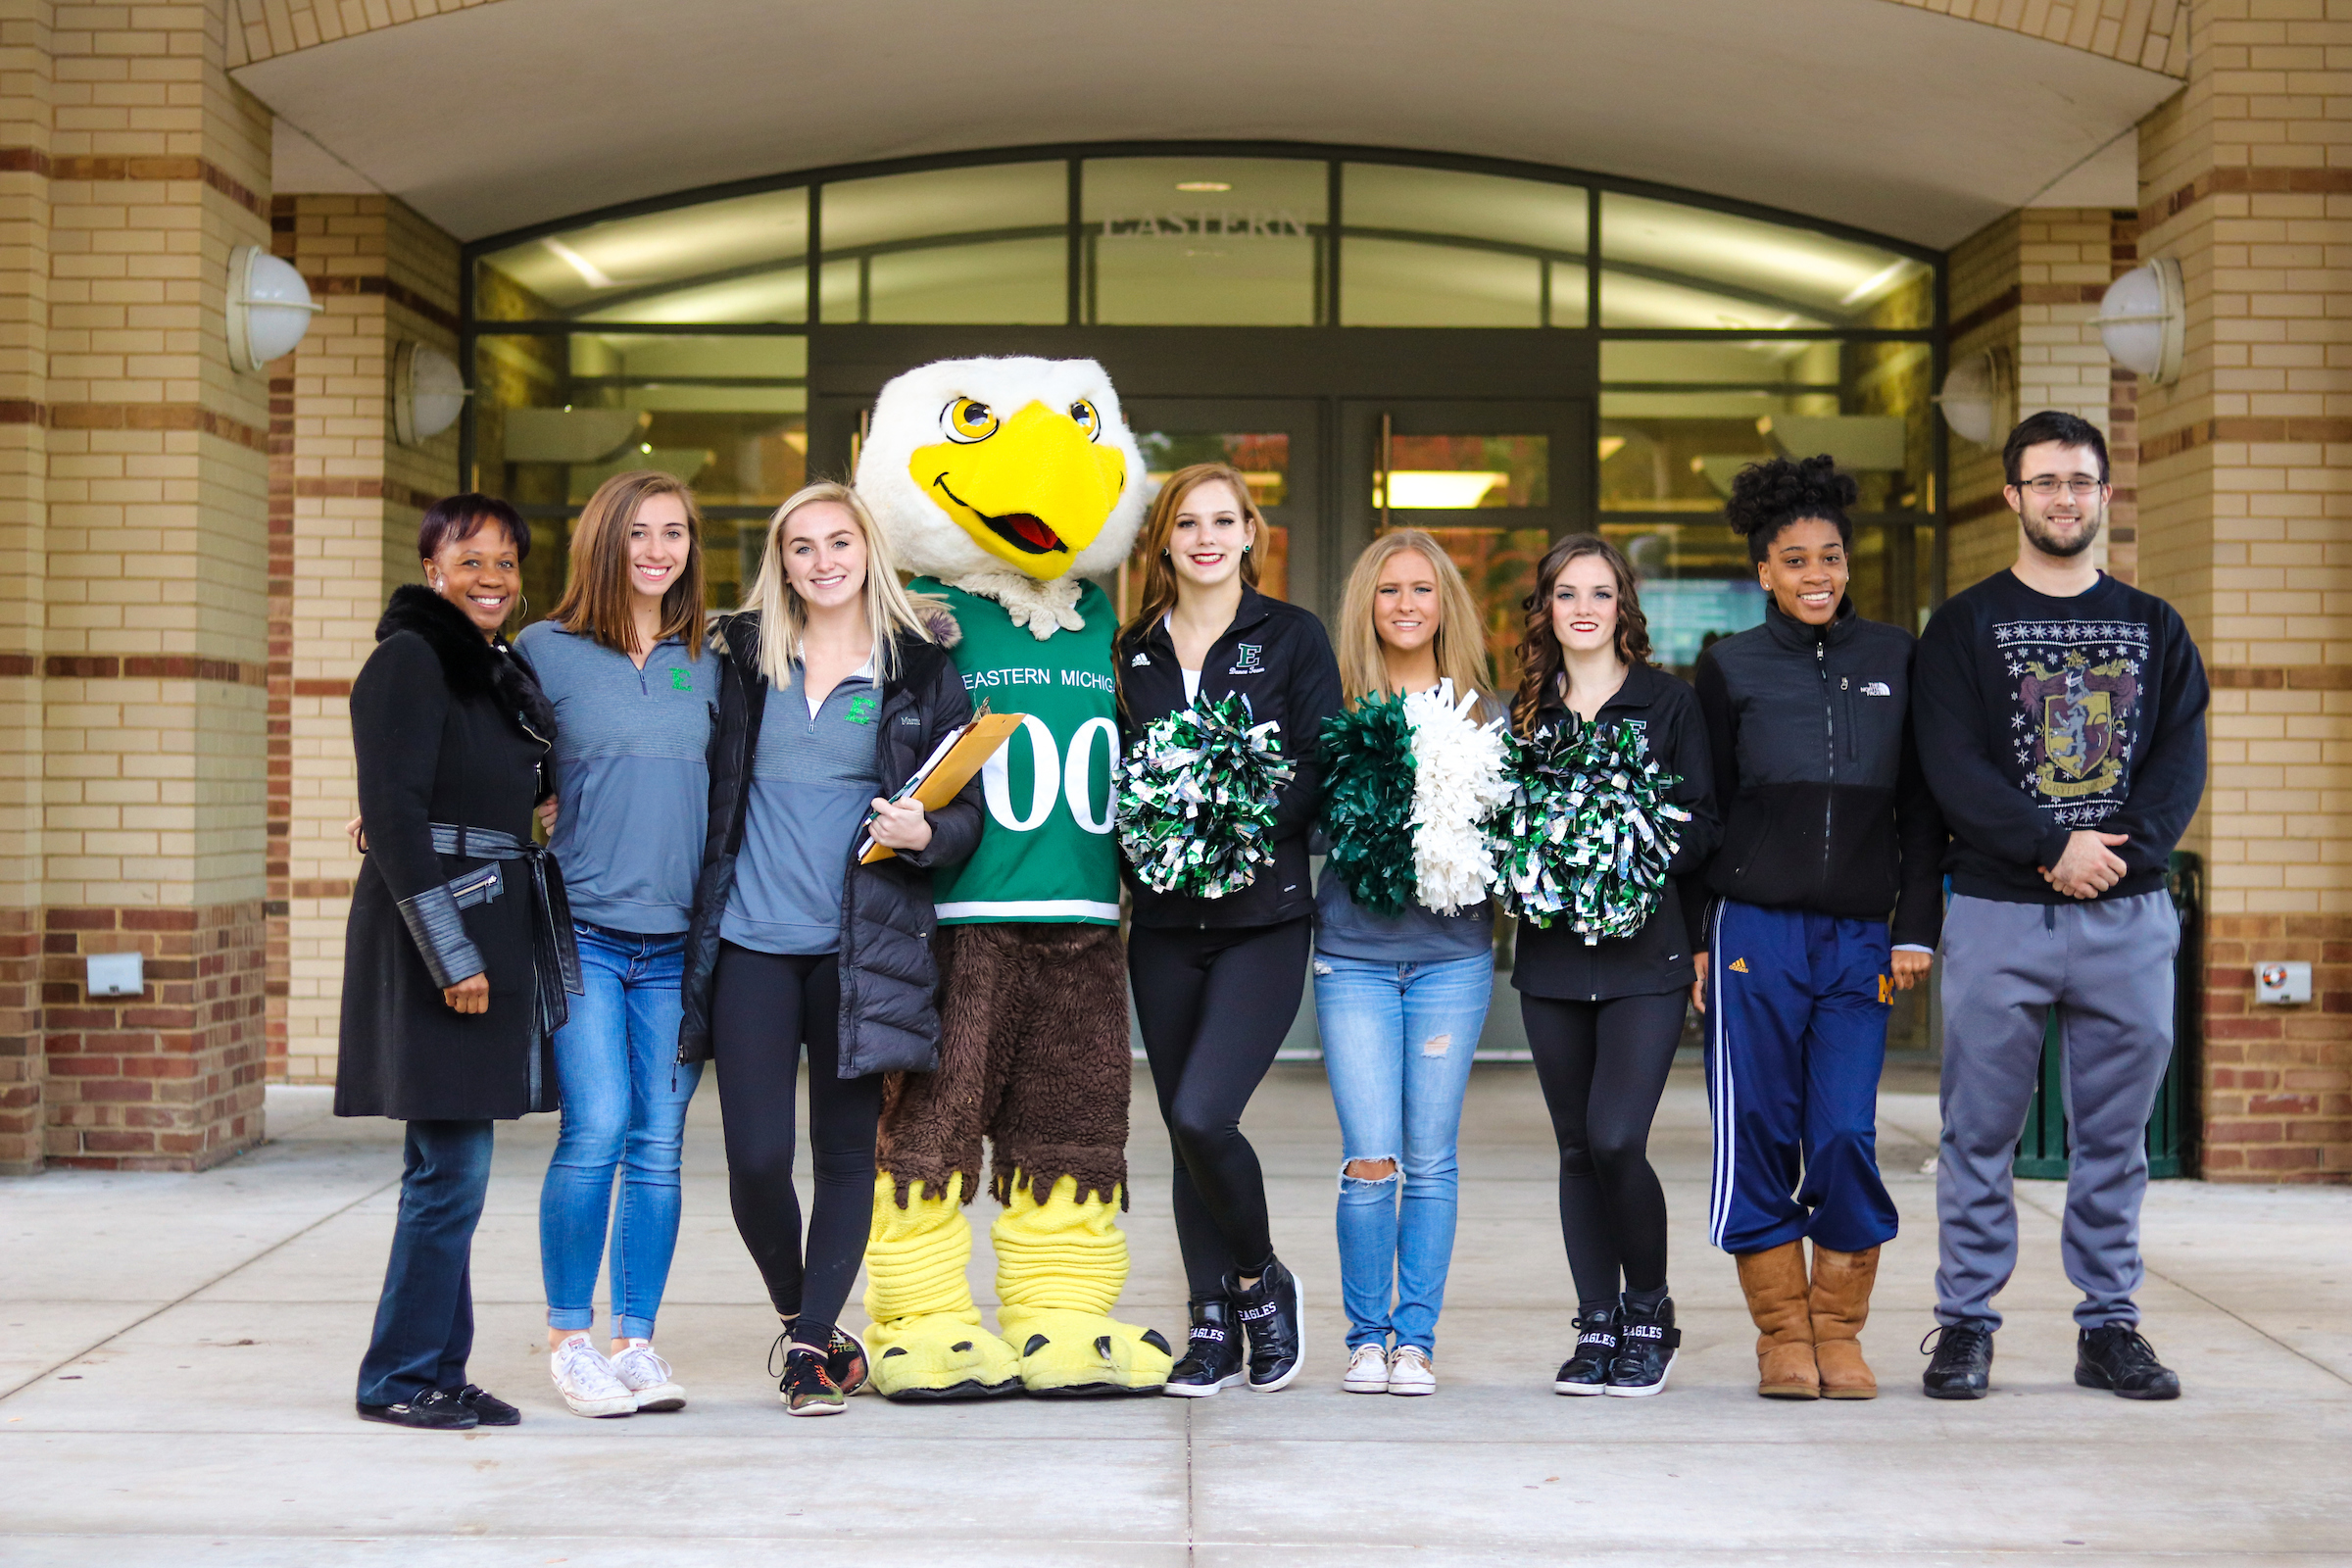 A photo of PR students standing with the EMU mascot, Swoop.